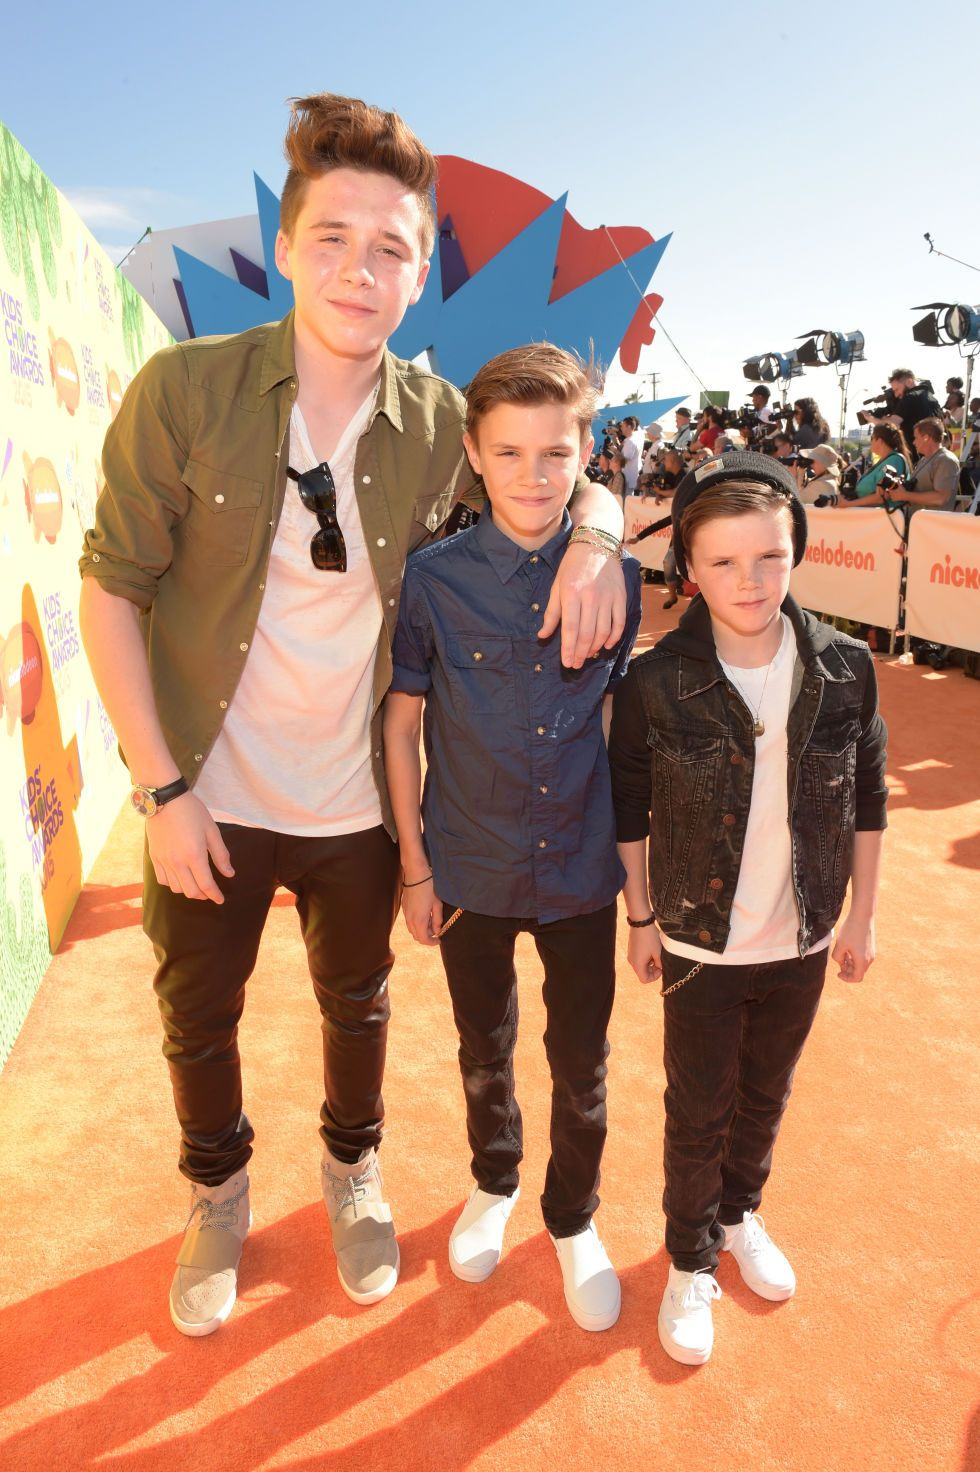 Guess where the Beckham boys went in this ensemble...